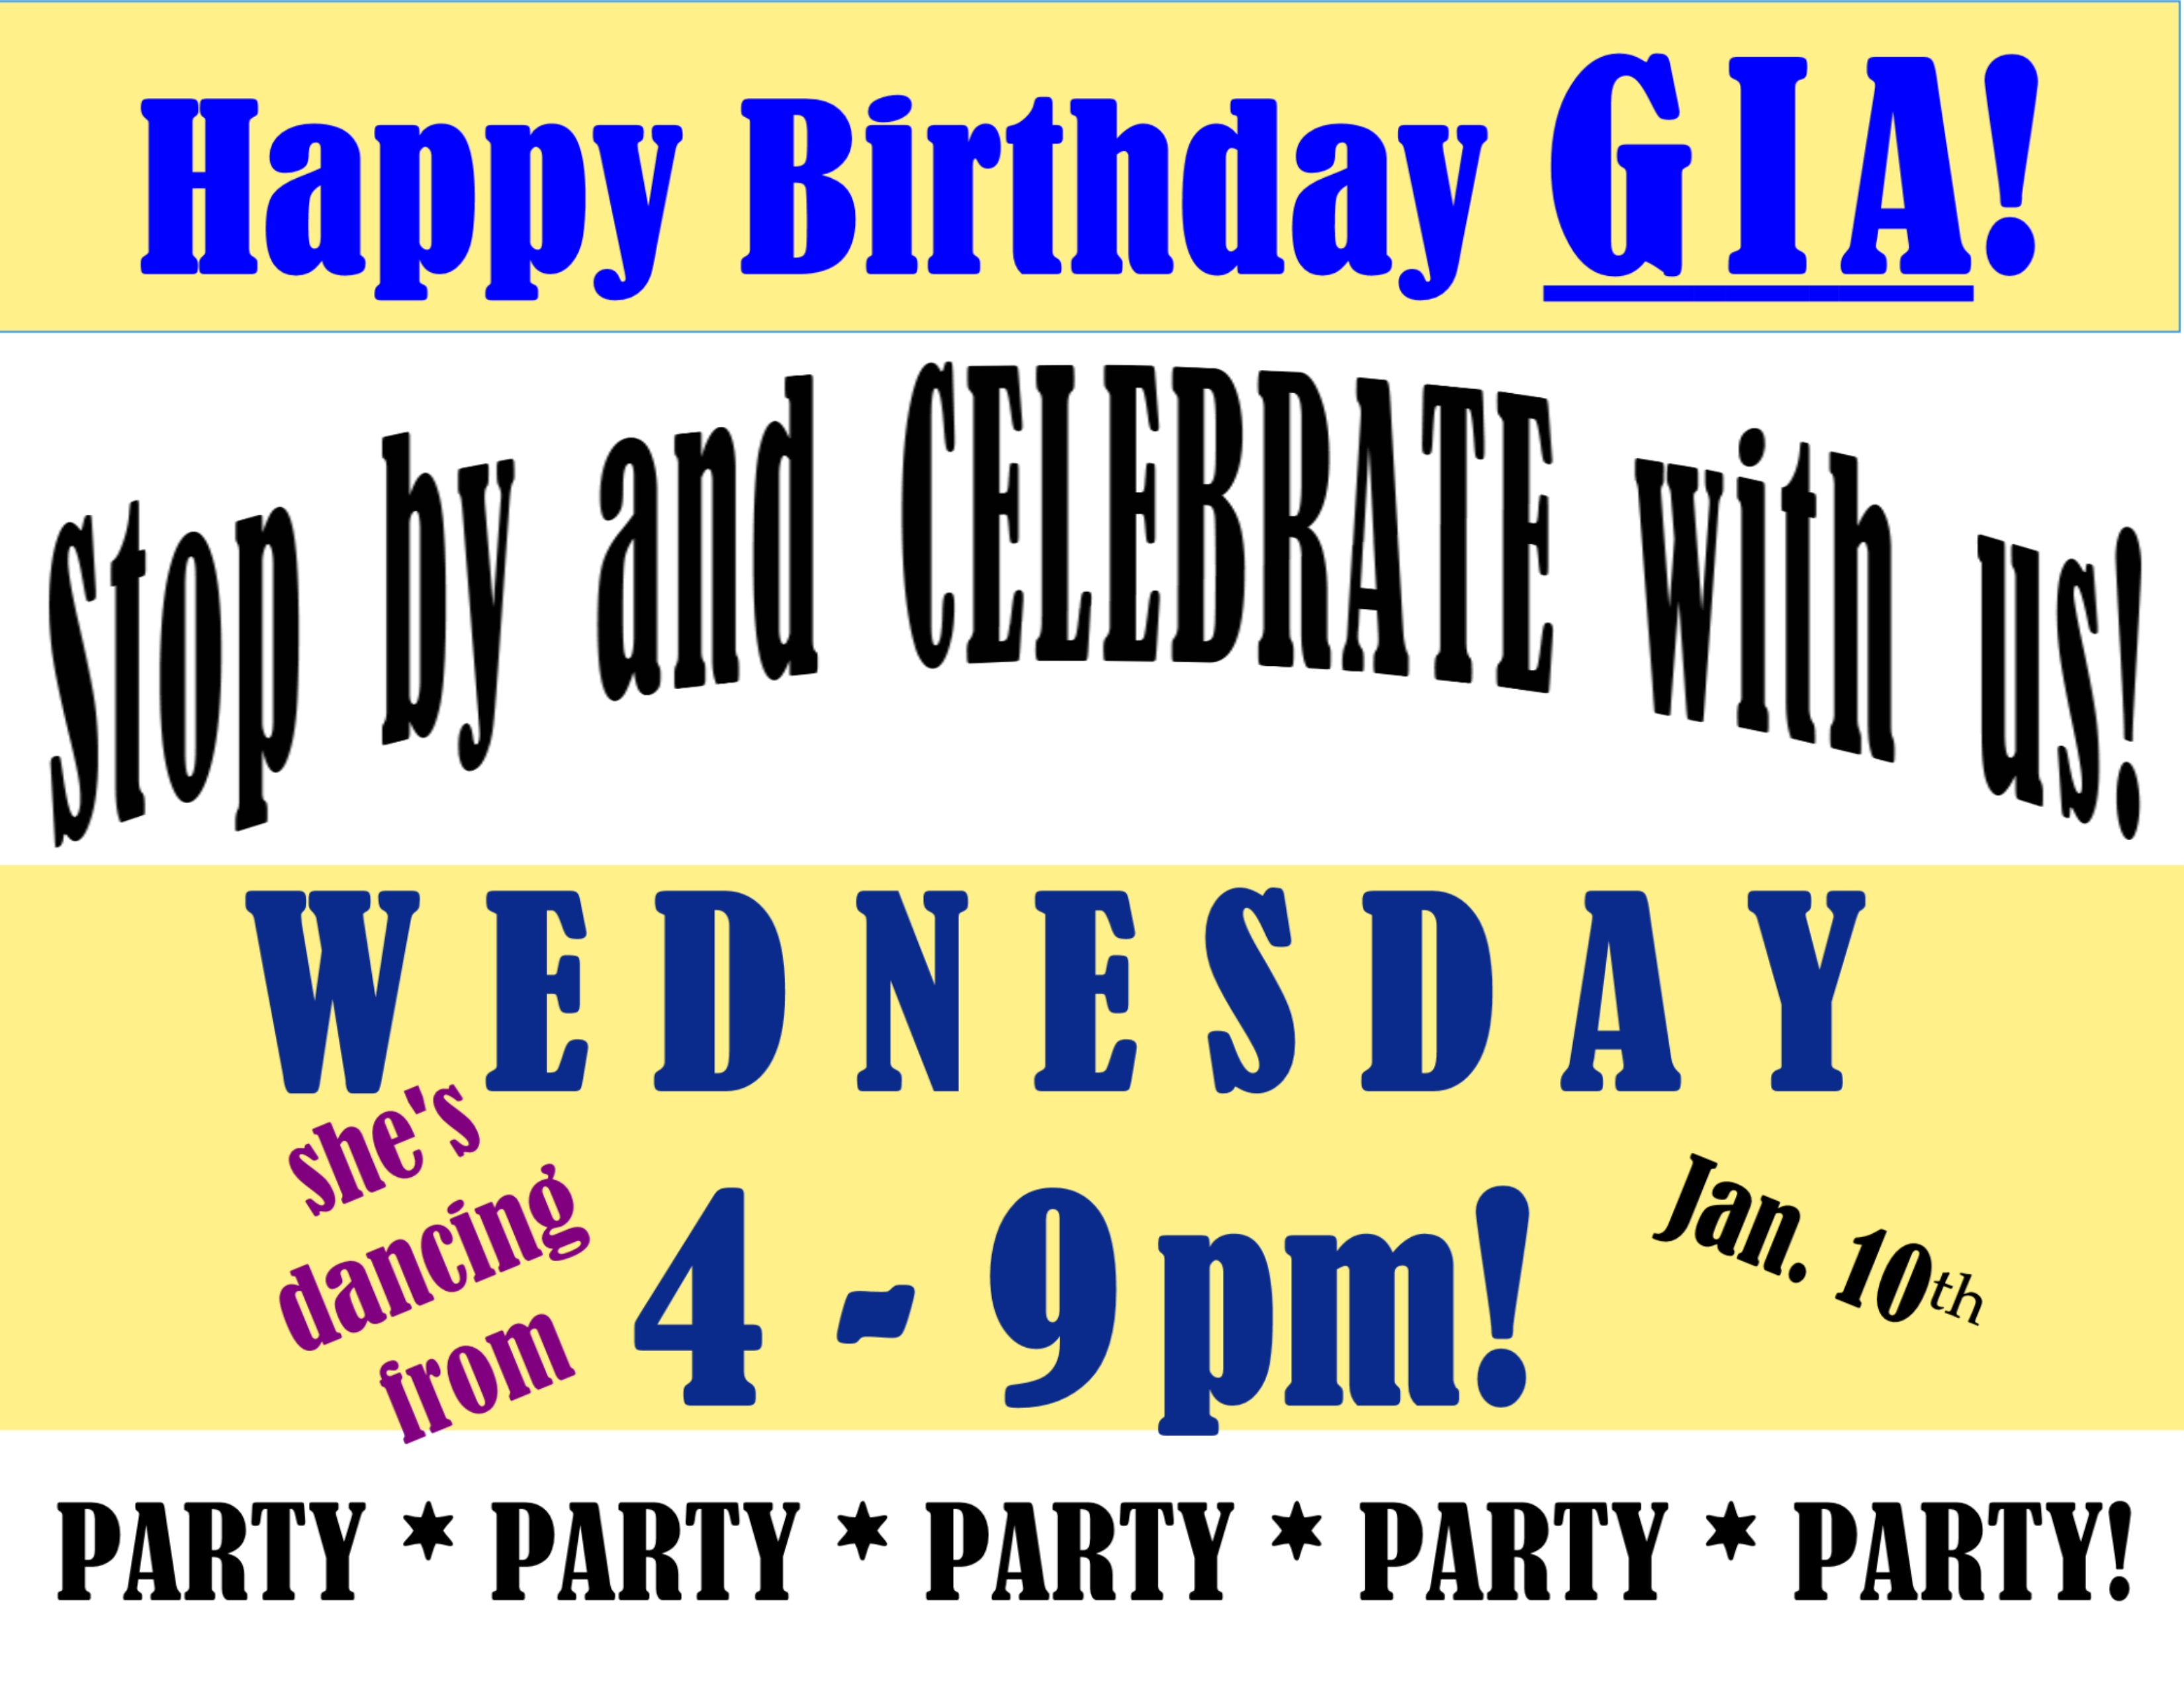 Wed., Jan. 10th PARTY for Gia!